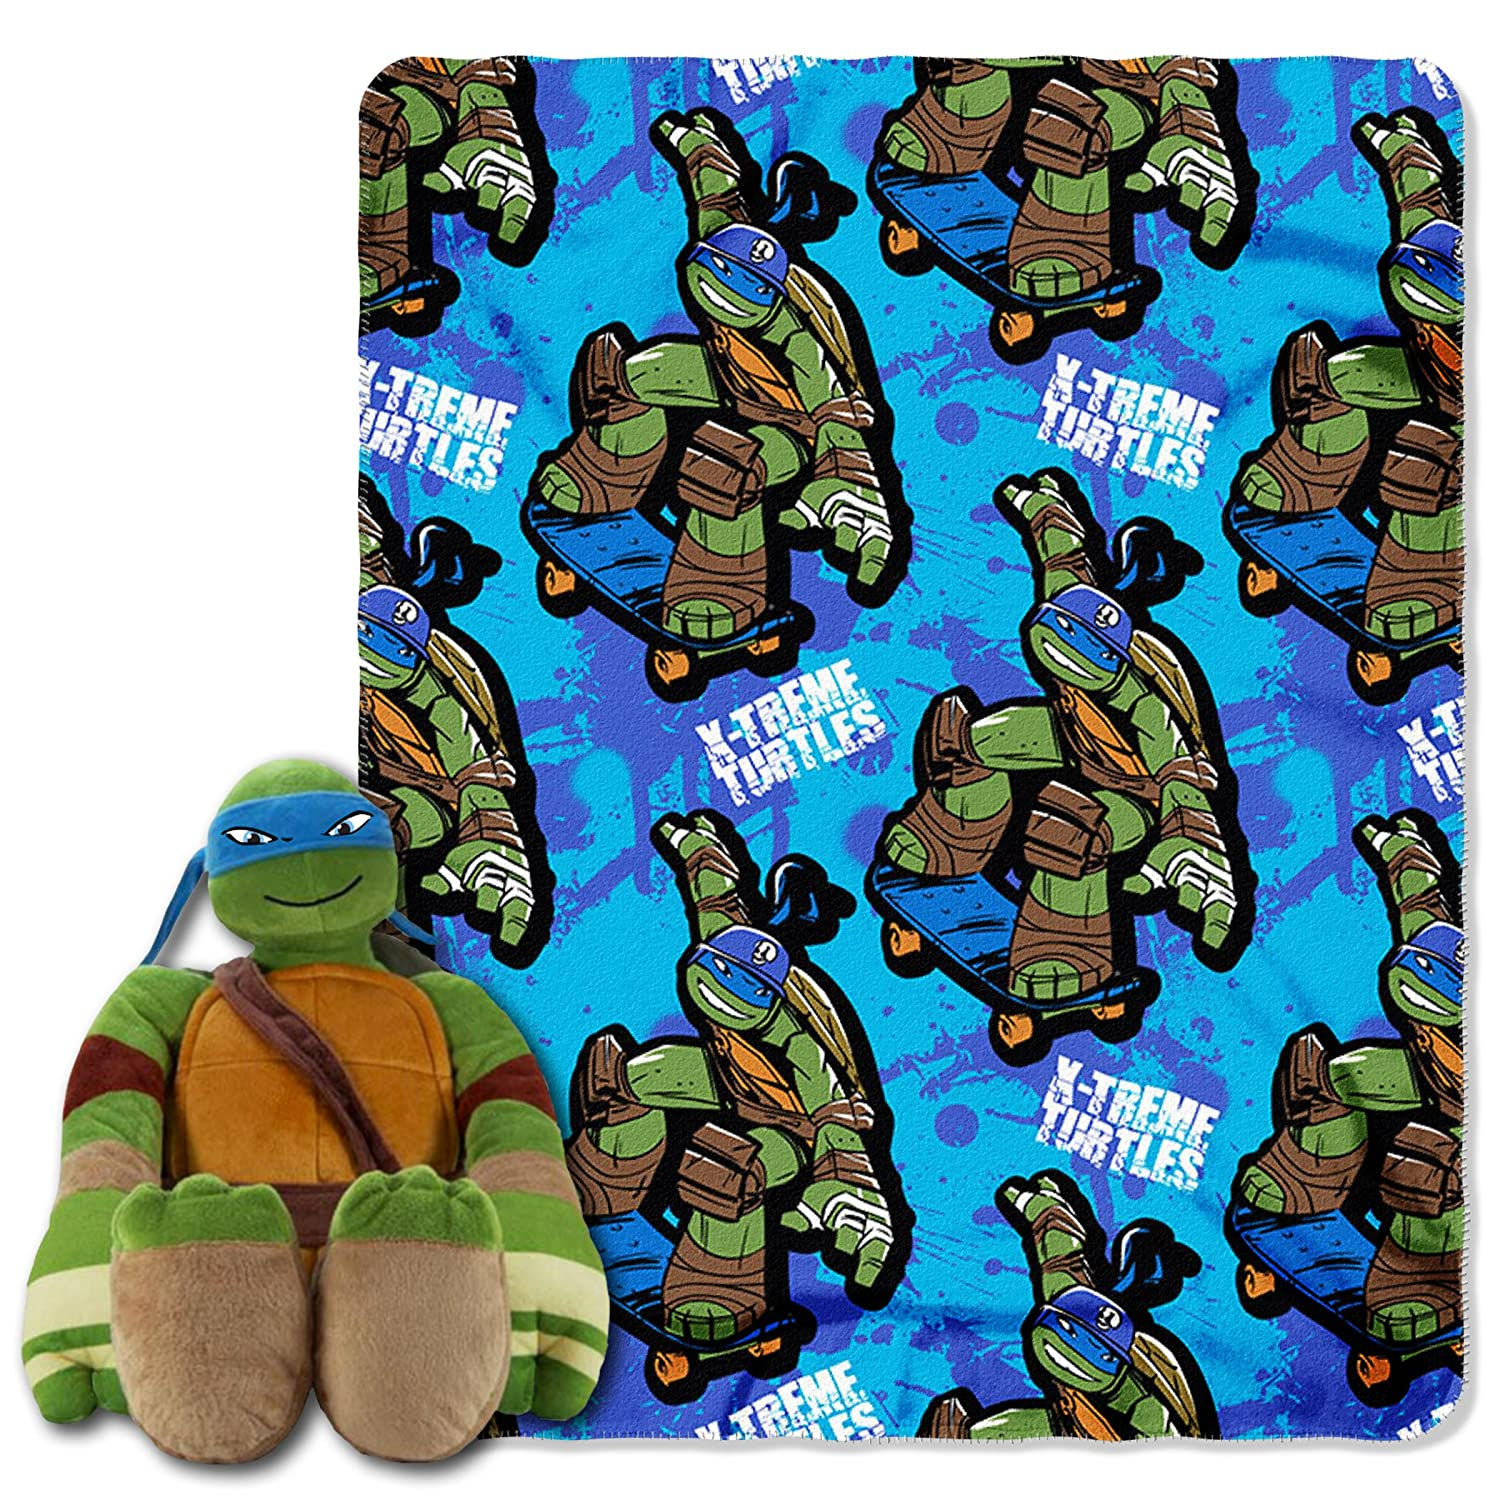 Nickelodeons Teenage Mutant Ninja Turtles,